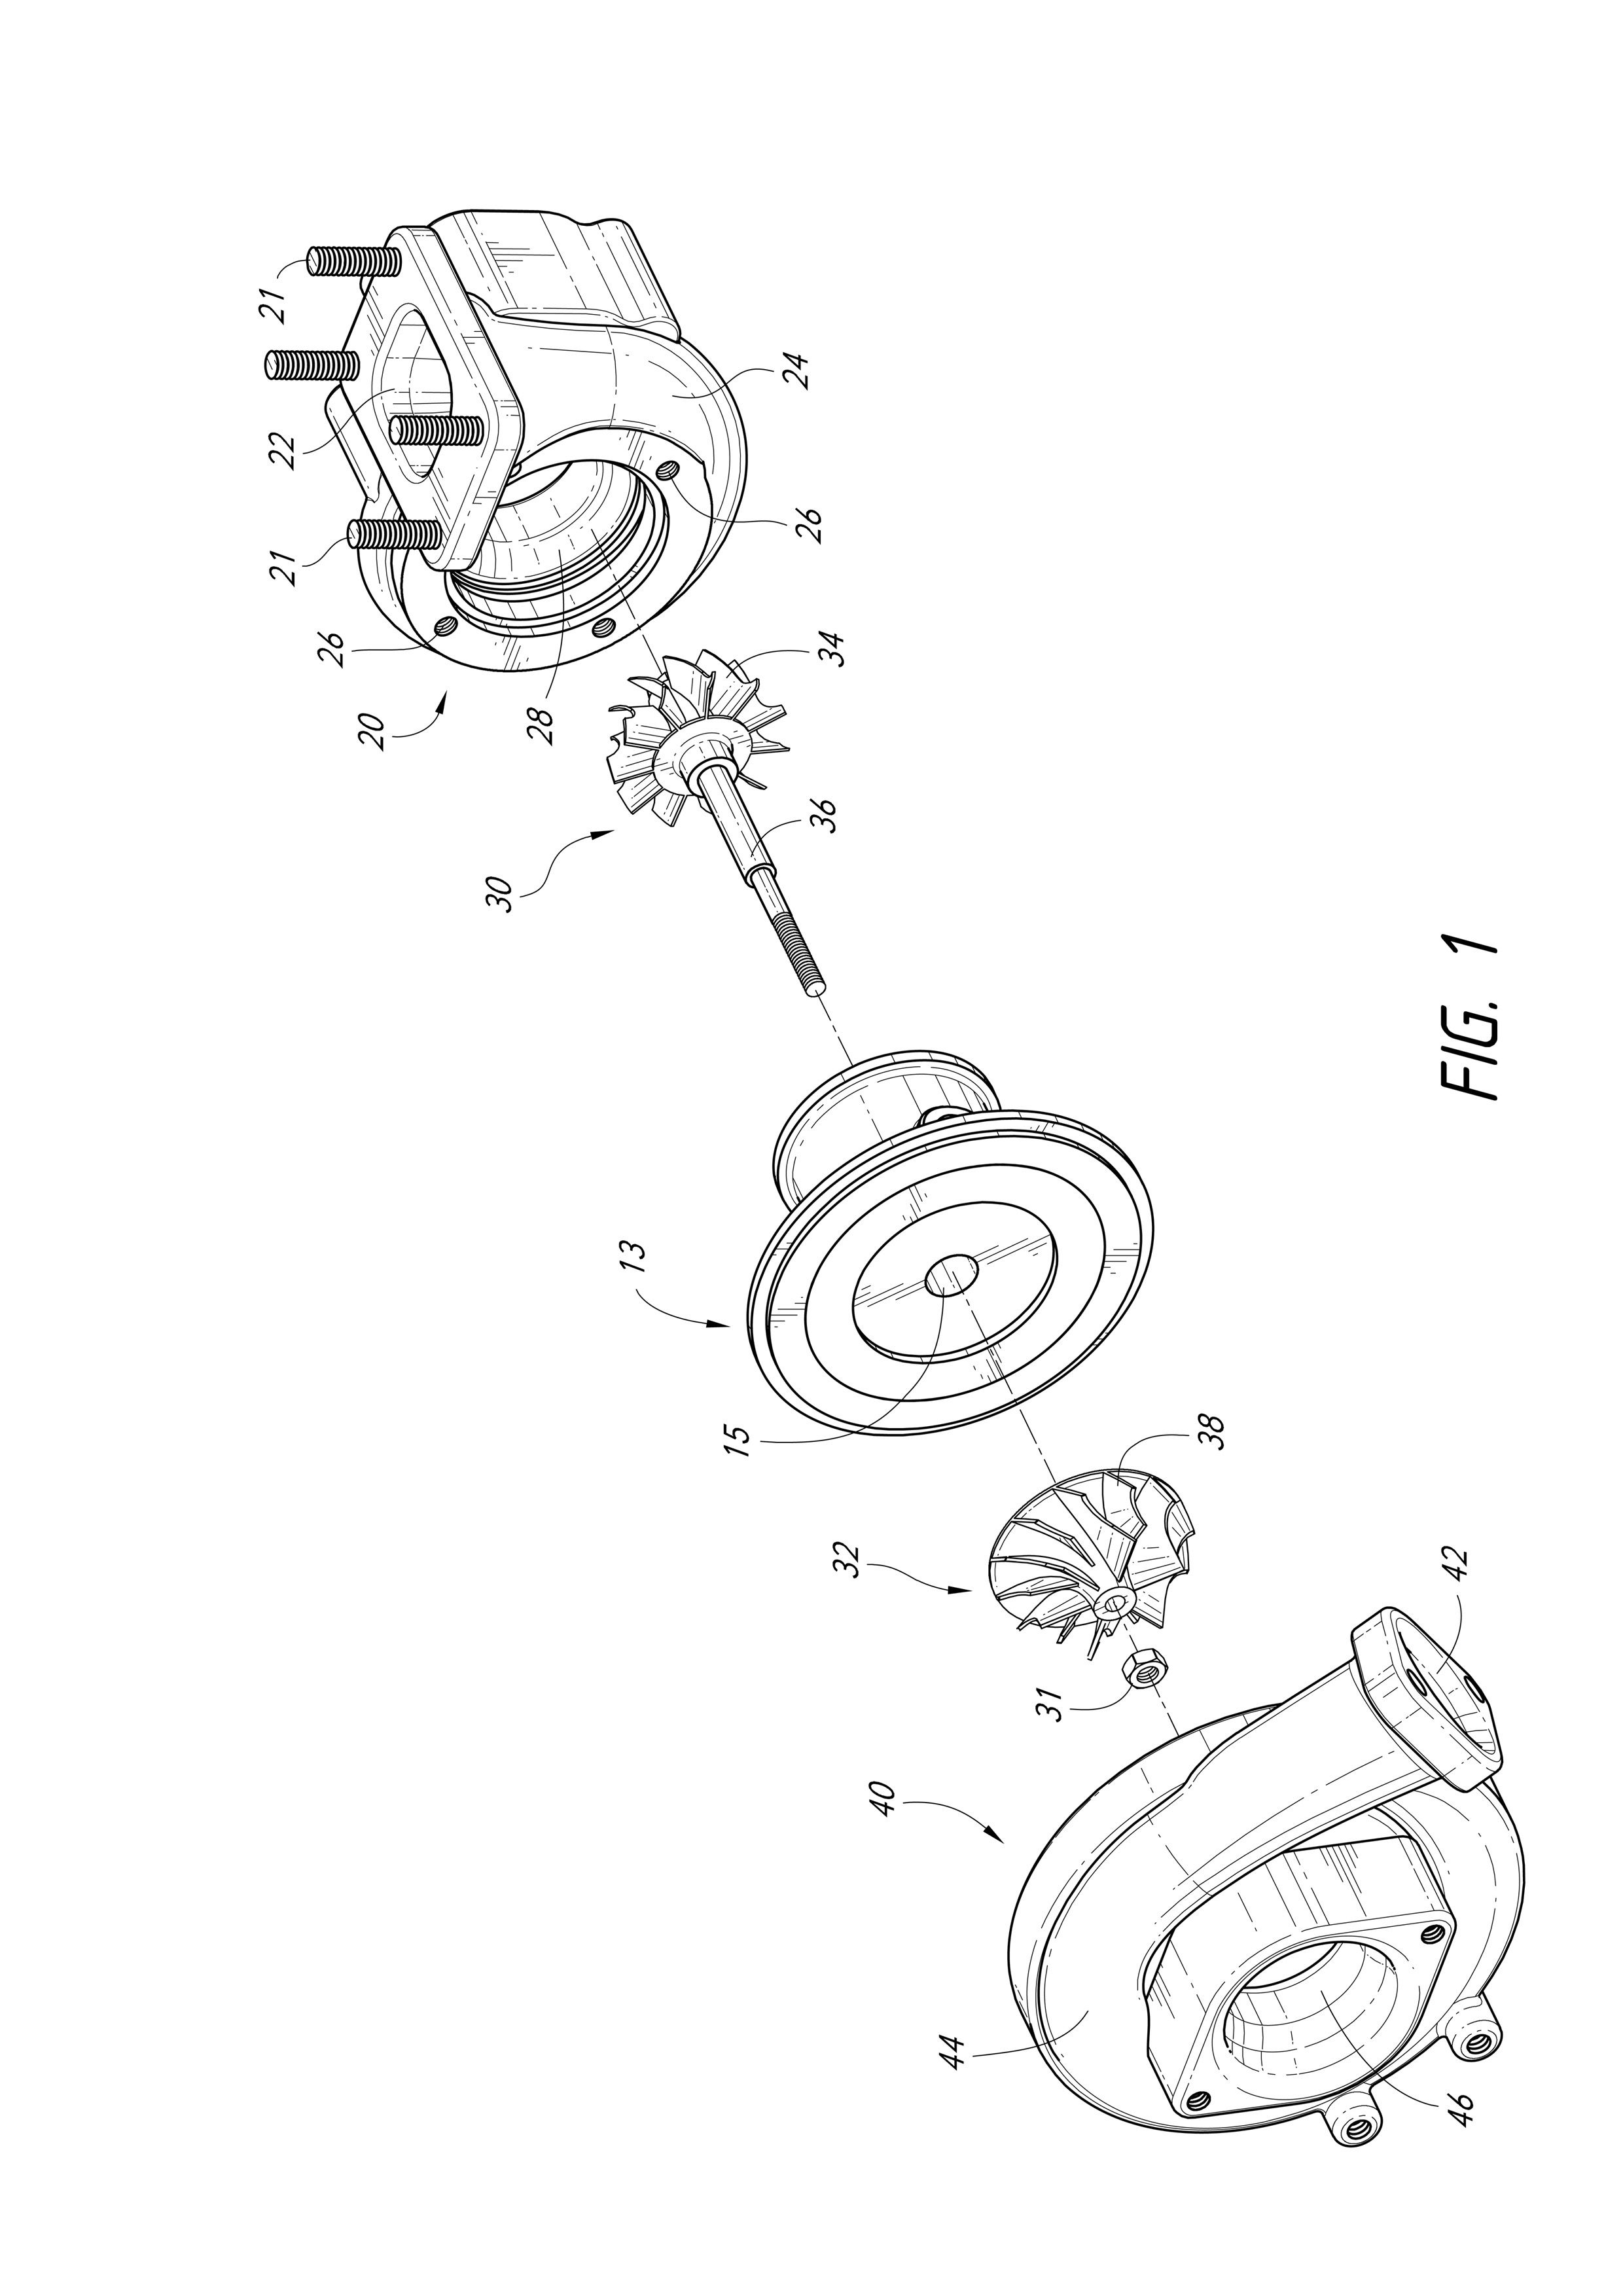 small resolution of exploded view of a turbo charger combustion engine exploded view drag cars drag